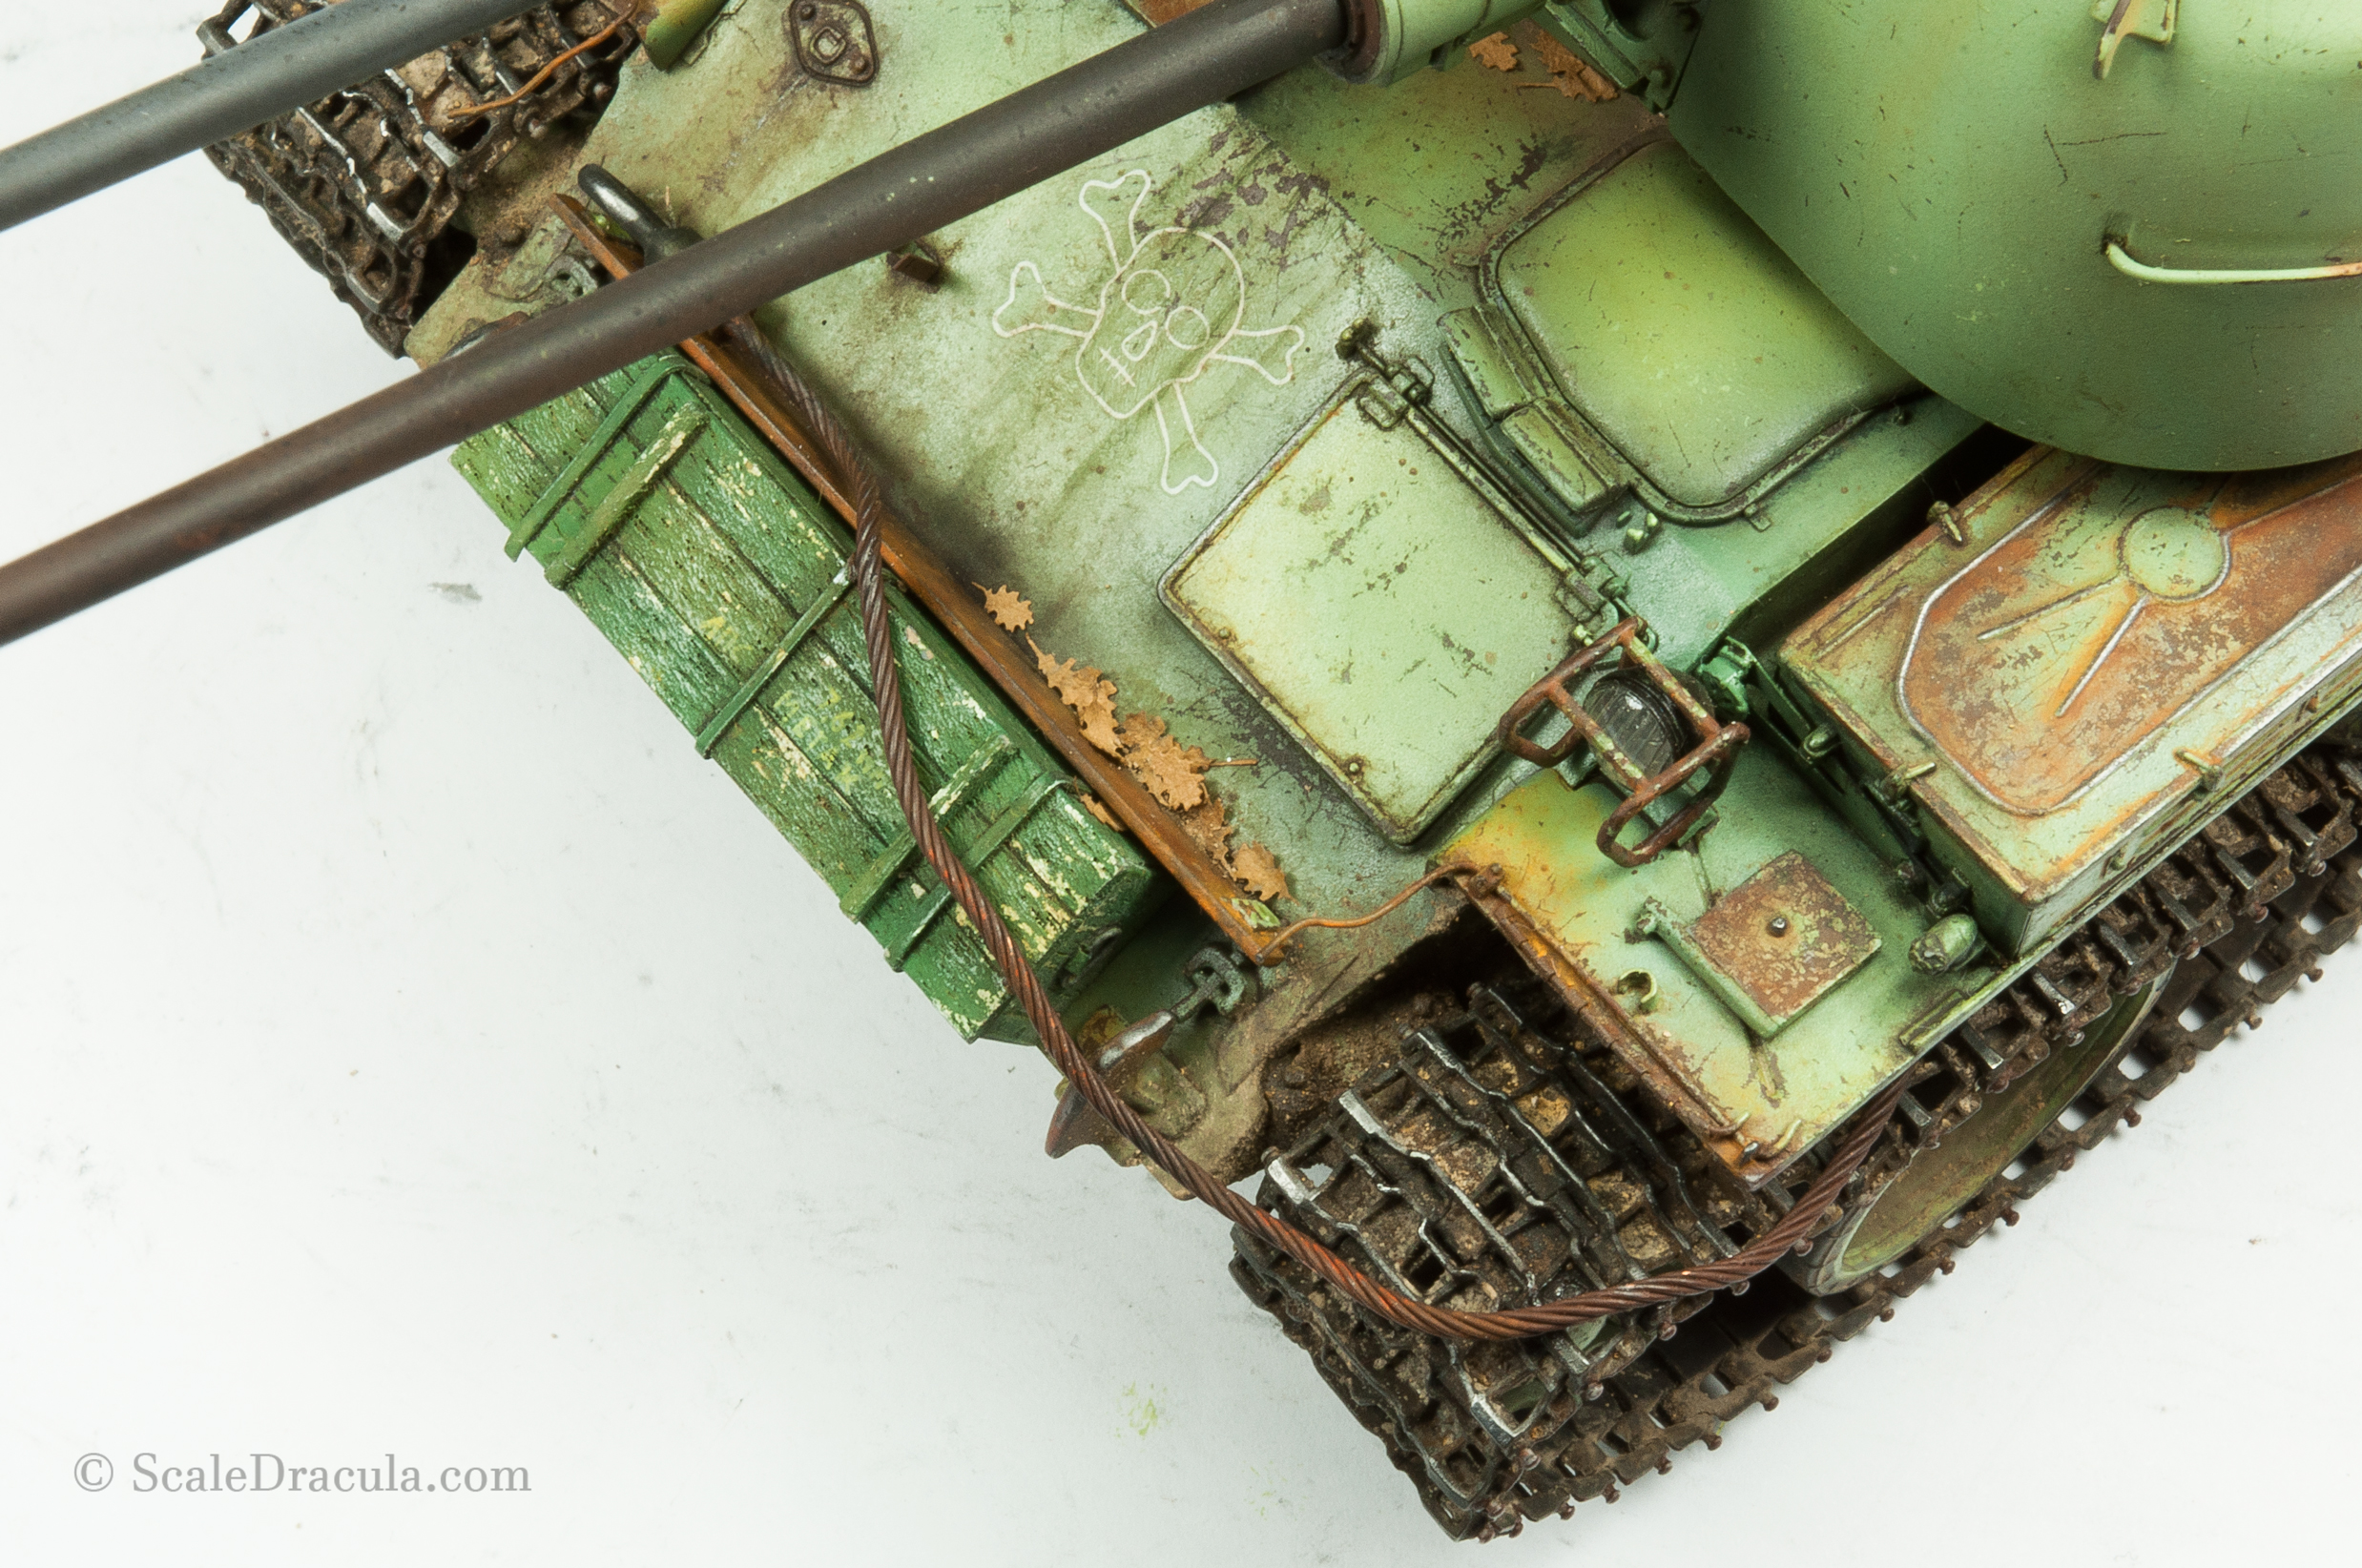 Leaves on the model, ZSU-57 by TAKOM